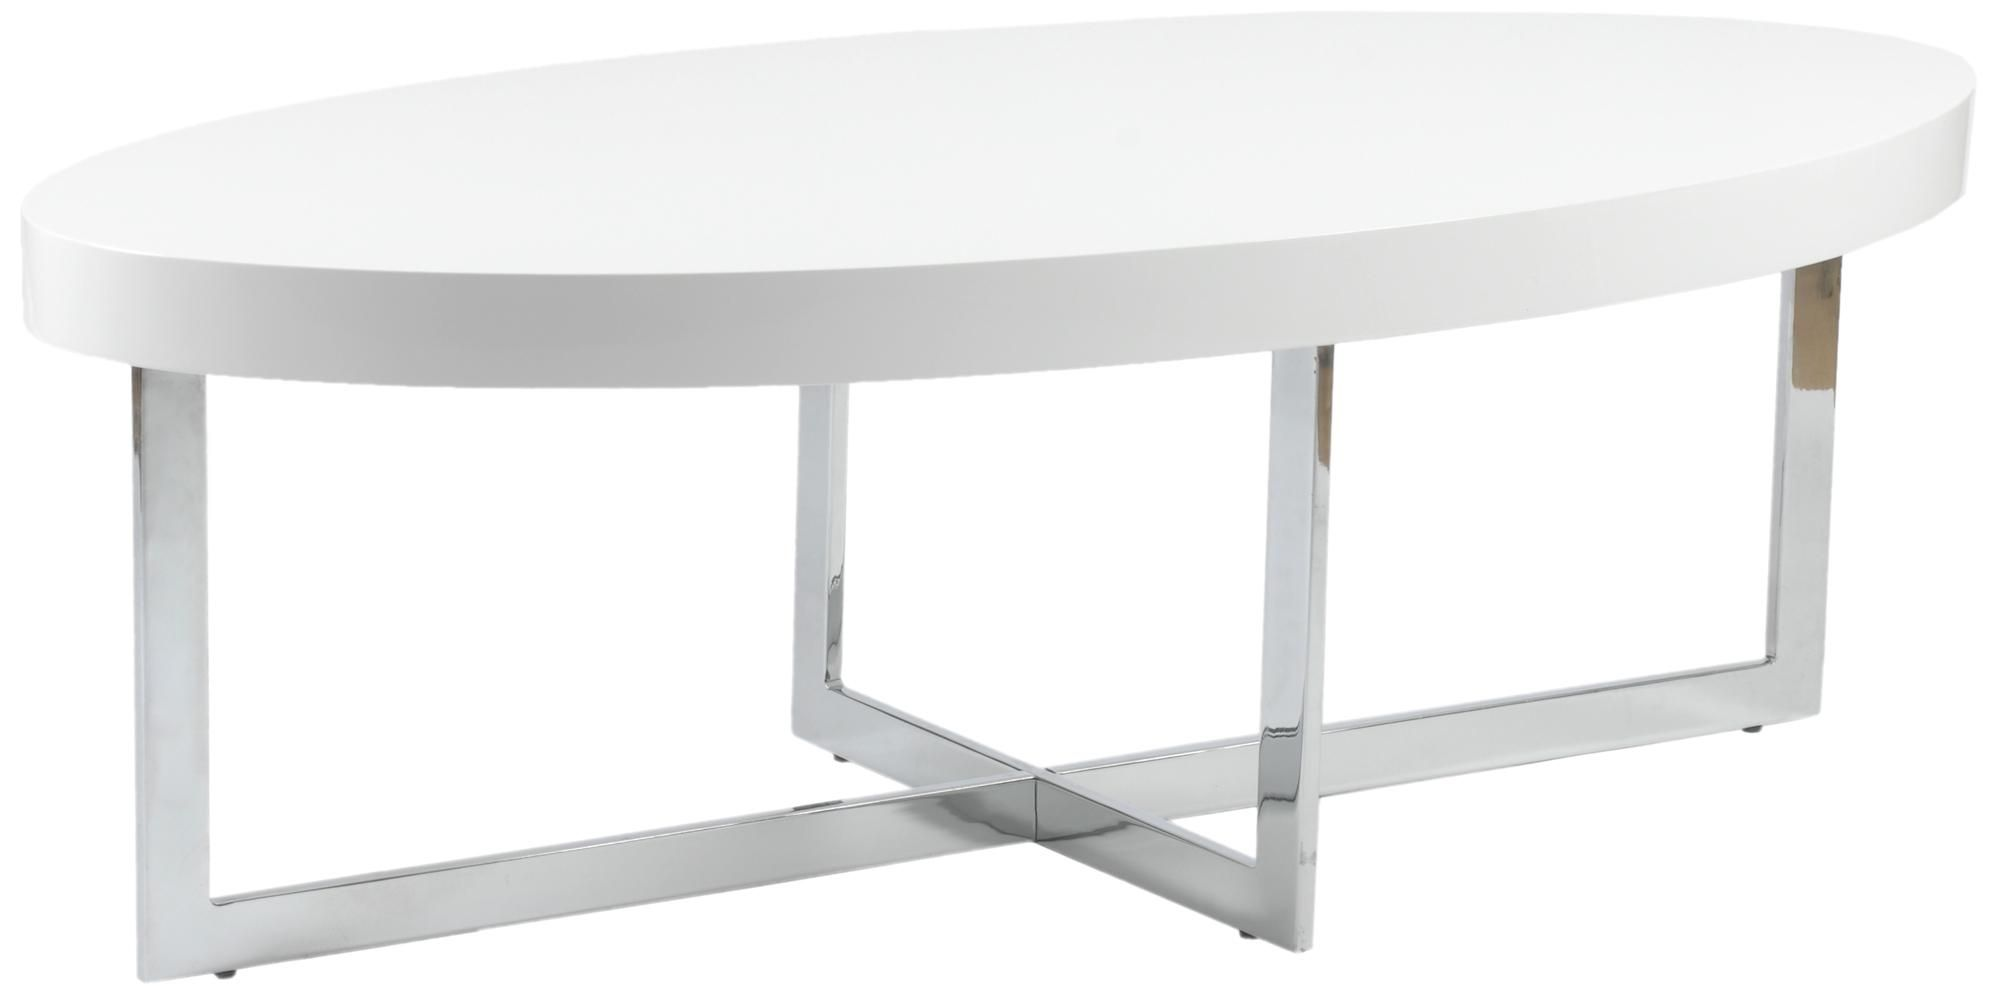 Oliver Oval Chrome And High Gloss White Coffee Table 2f979 Lamps Plus Coffee Table Contemporary Coffee Table Oval Coffee Tables